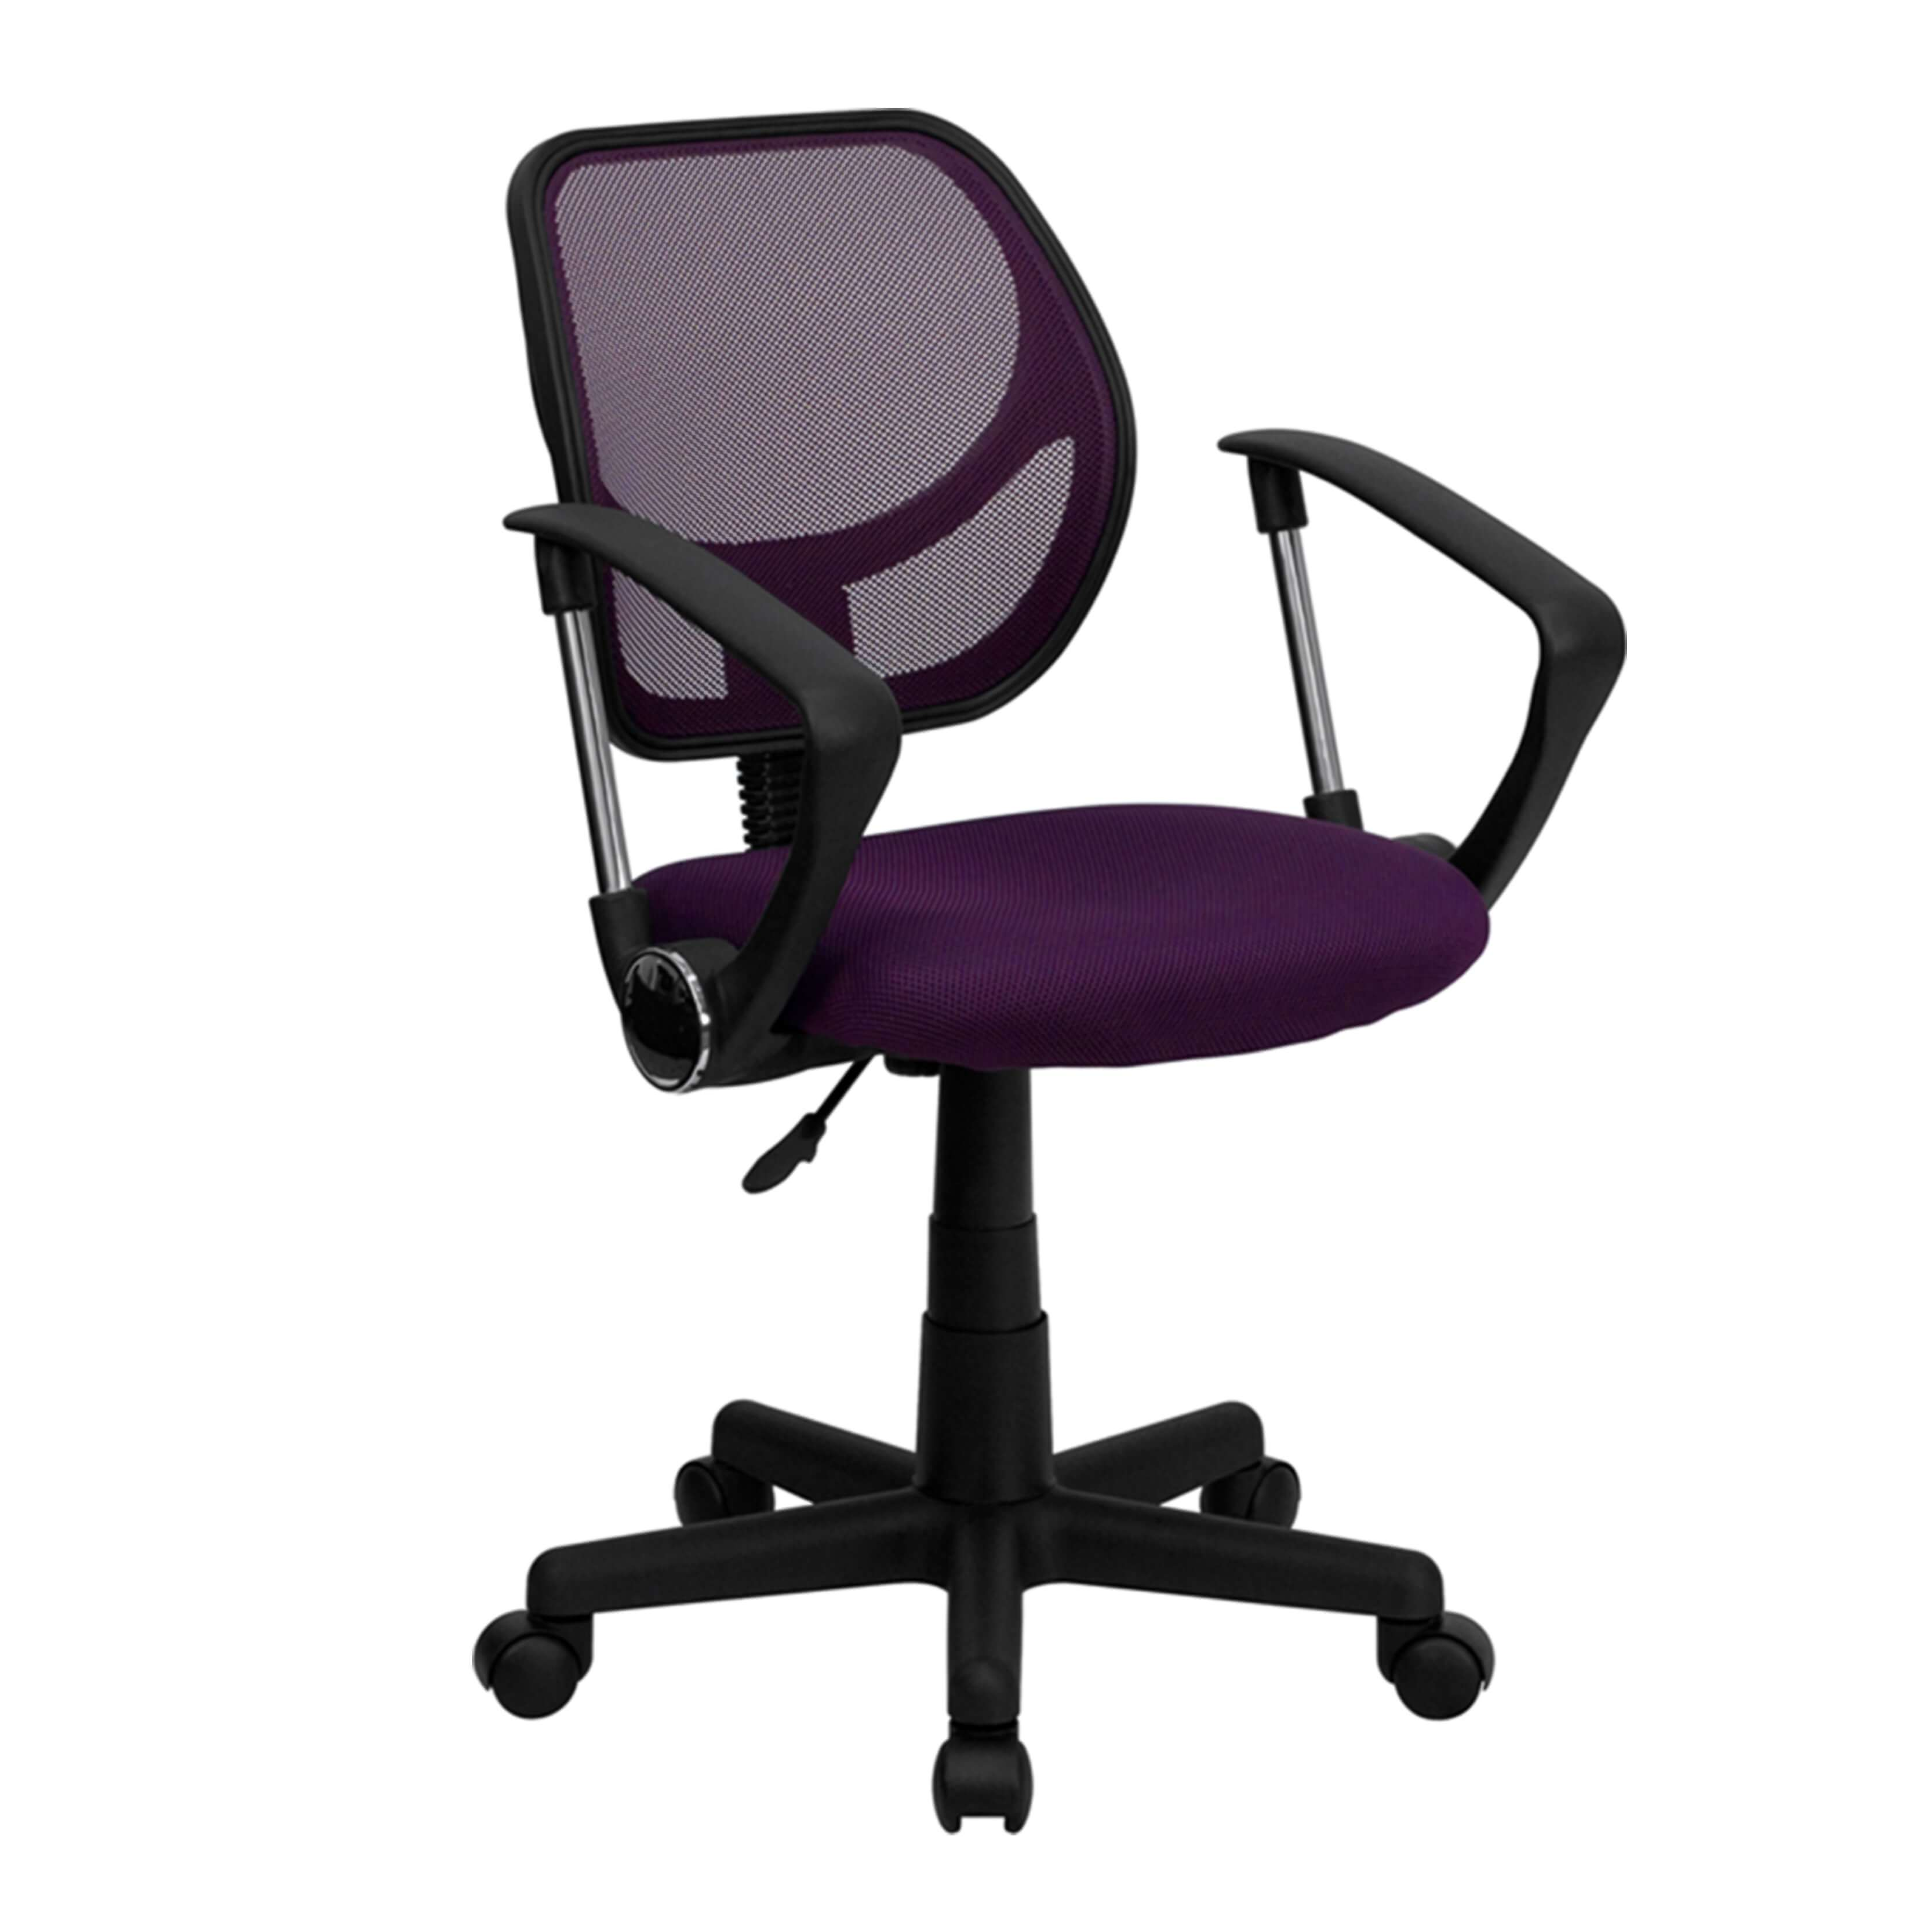 cool-office-chairs-petite-office-chairs.jpg